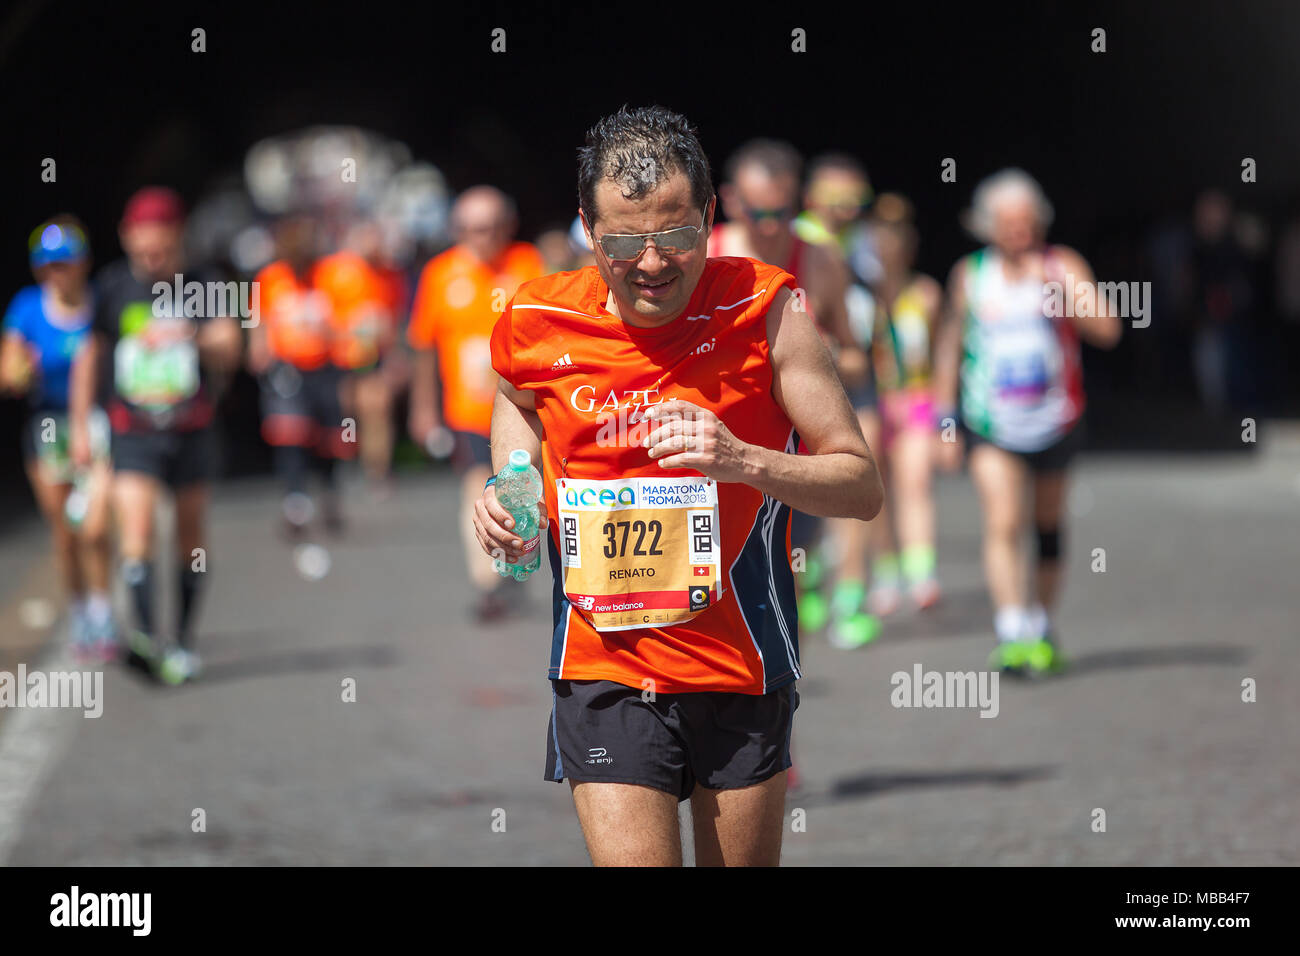 24th Rome Marathon High Resolution Stock Photography and Images ...